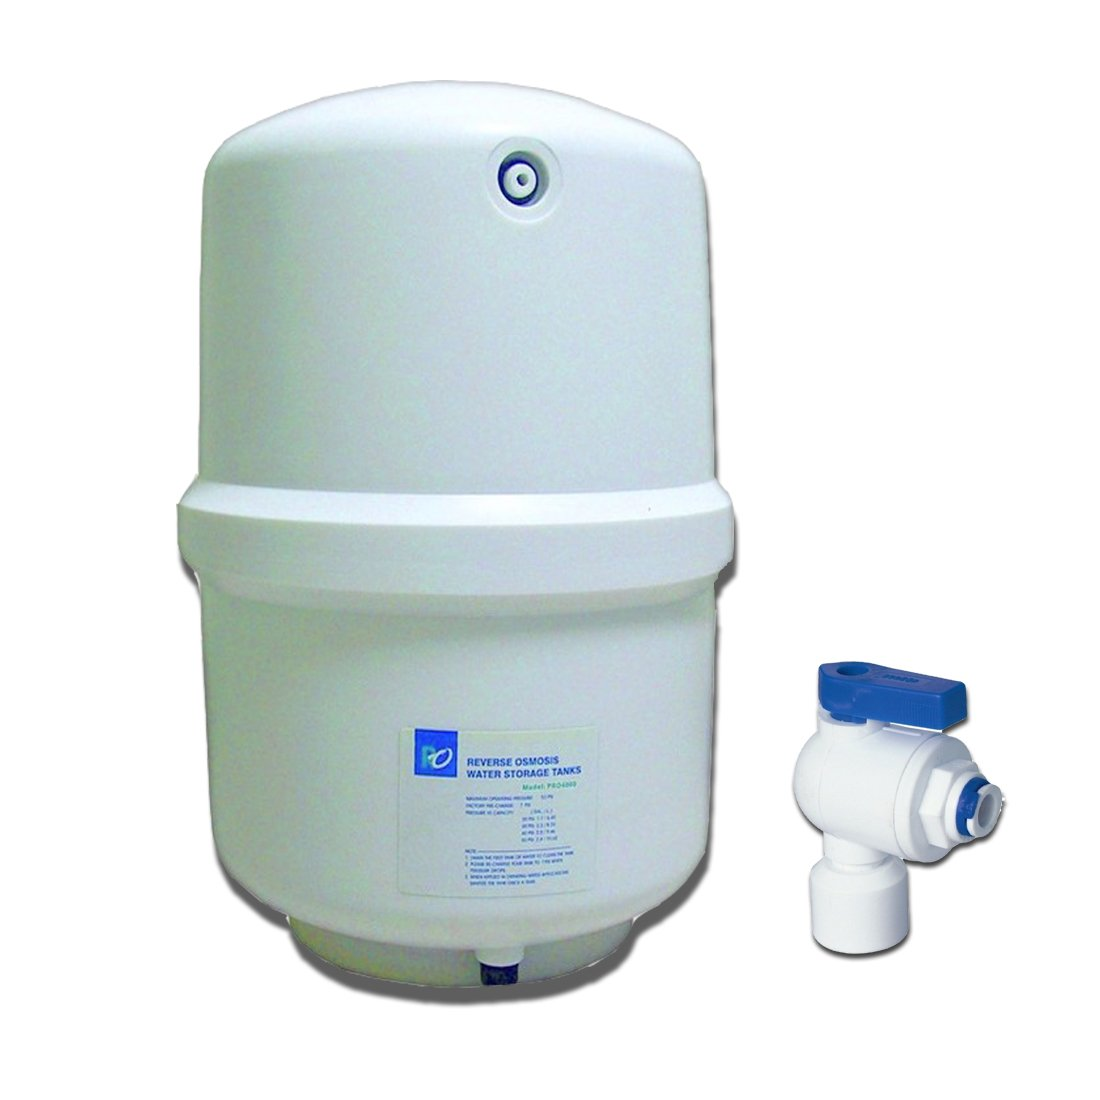 Kemflo 10 L Water Storage Pressure Tank: Amazon.in: Home & Kitchen